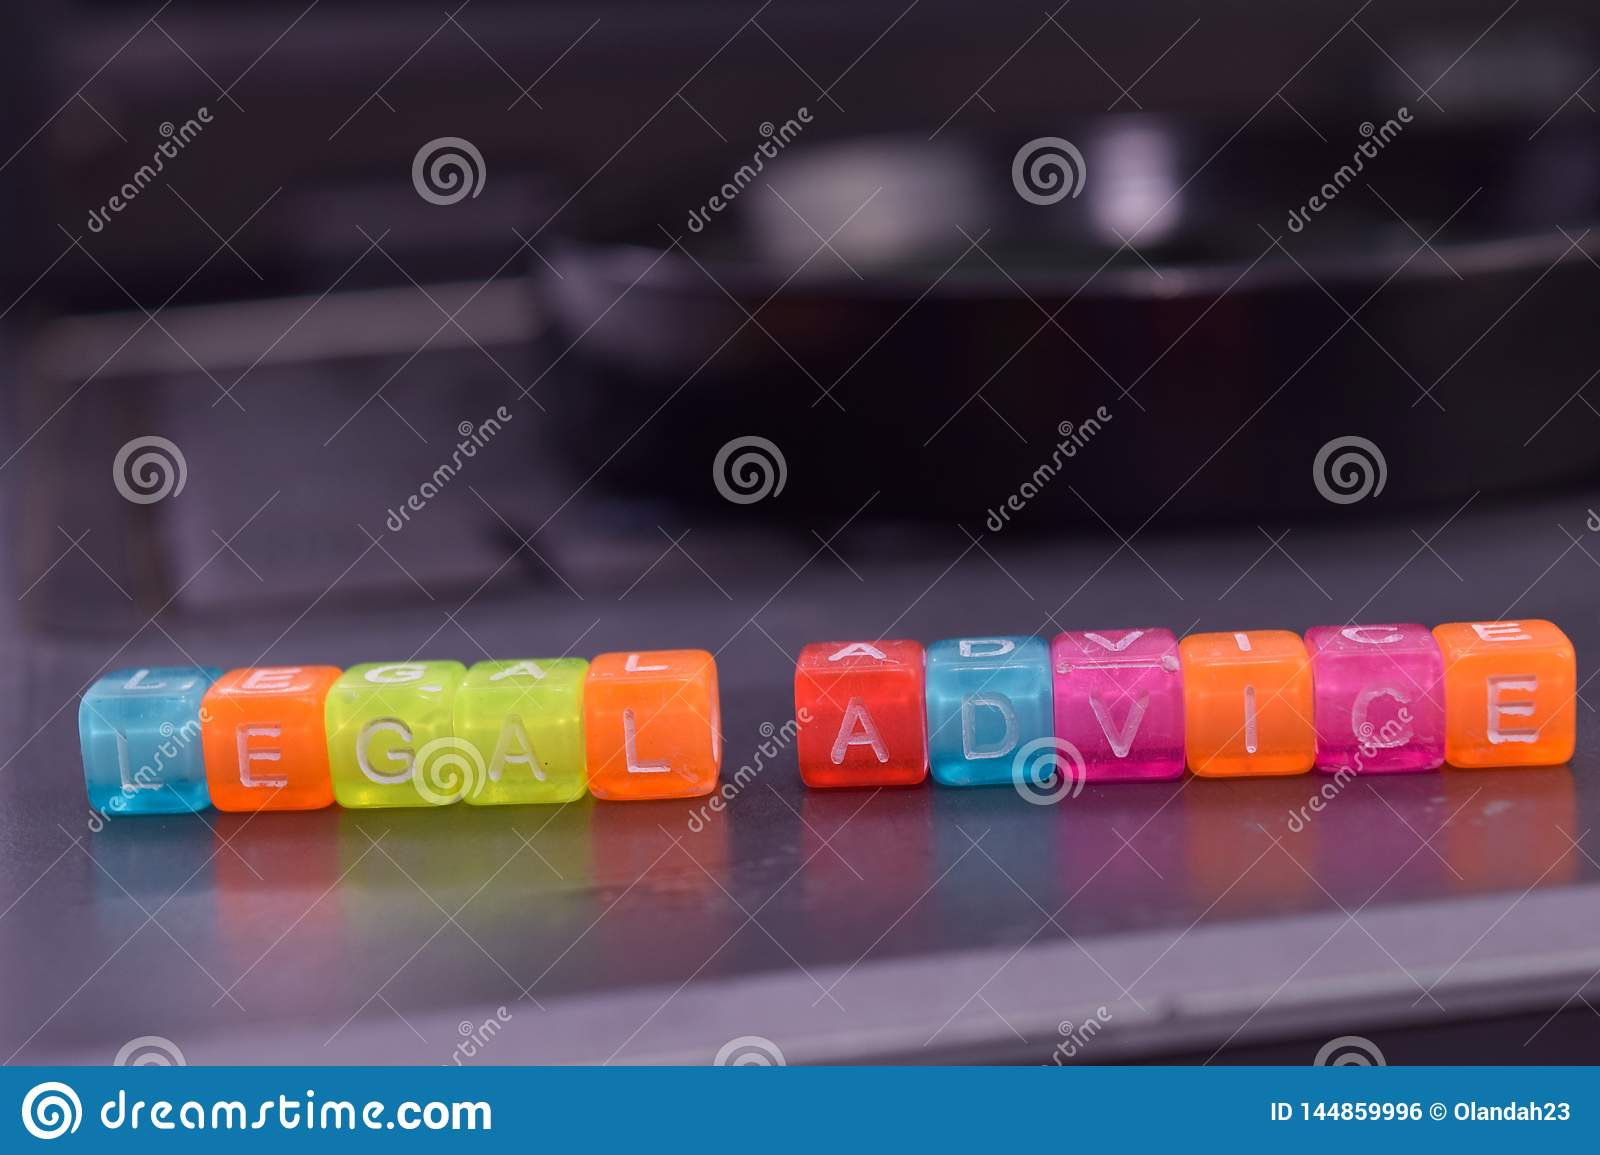 Legal Advide on wooden blocks. Cross processed image with business concept on laptop background